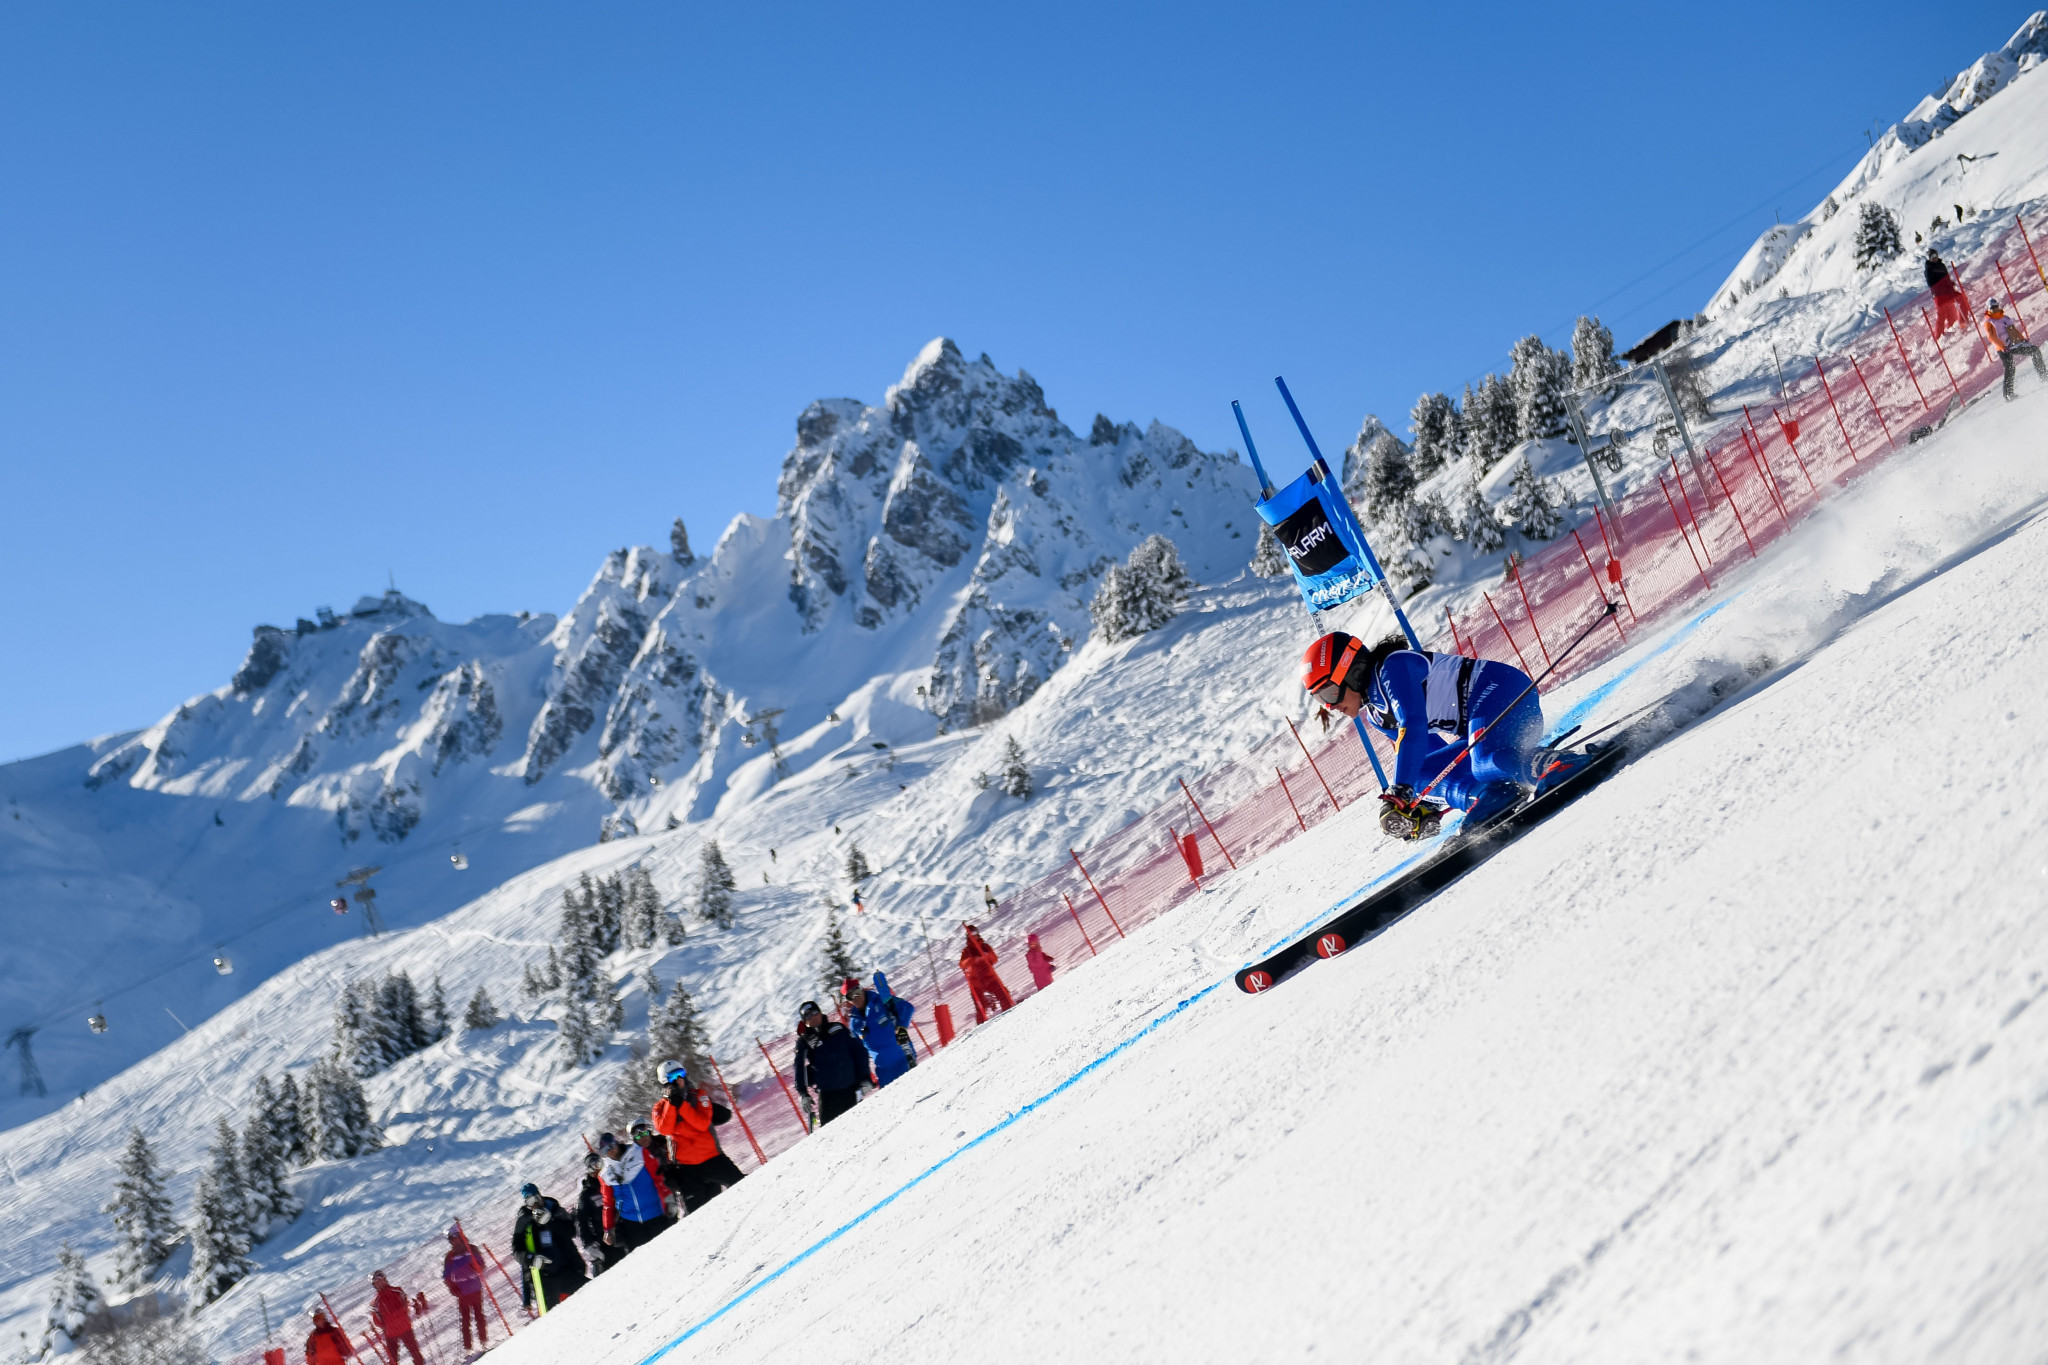 Brignone secures surprise win as Pinturault prevails at FIS Alpine Skiing World Cup